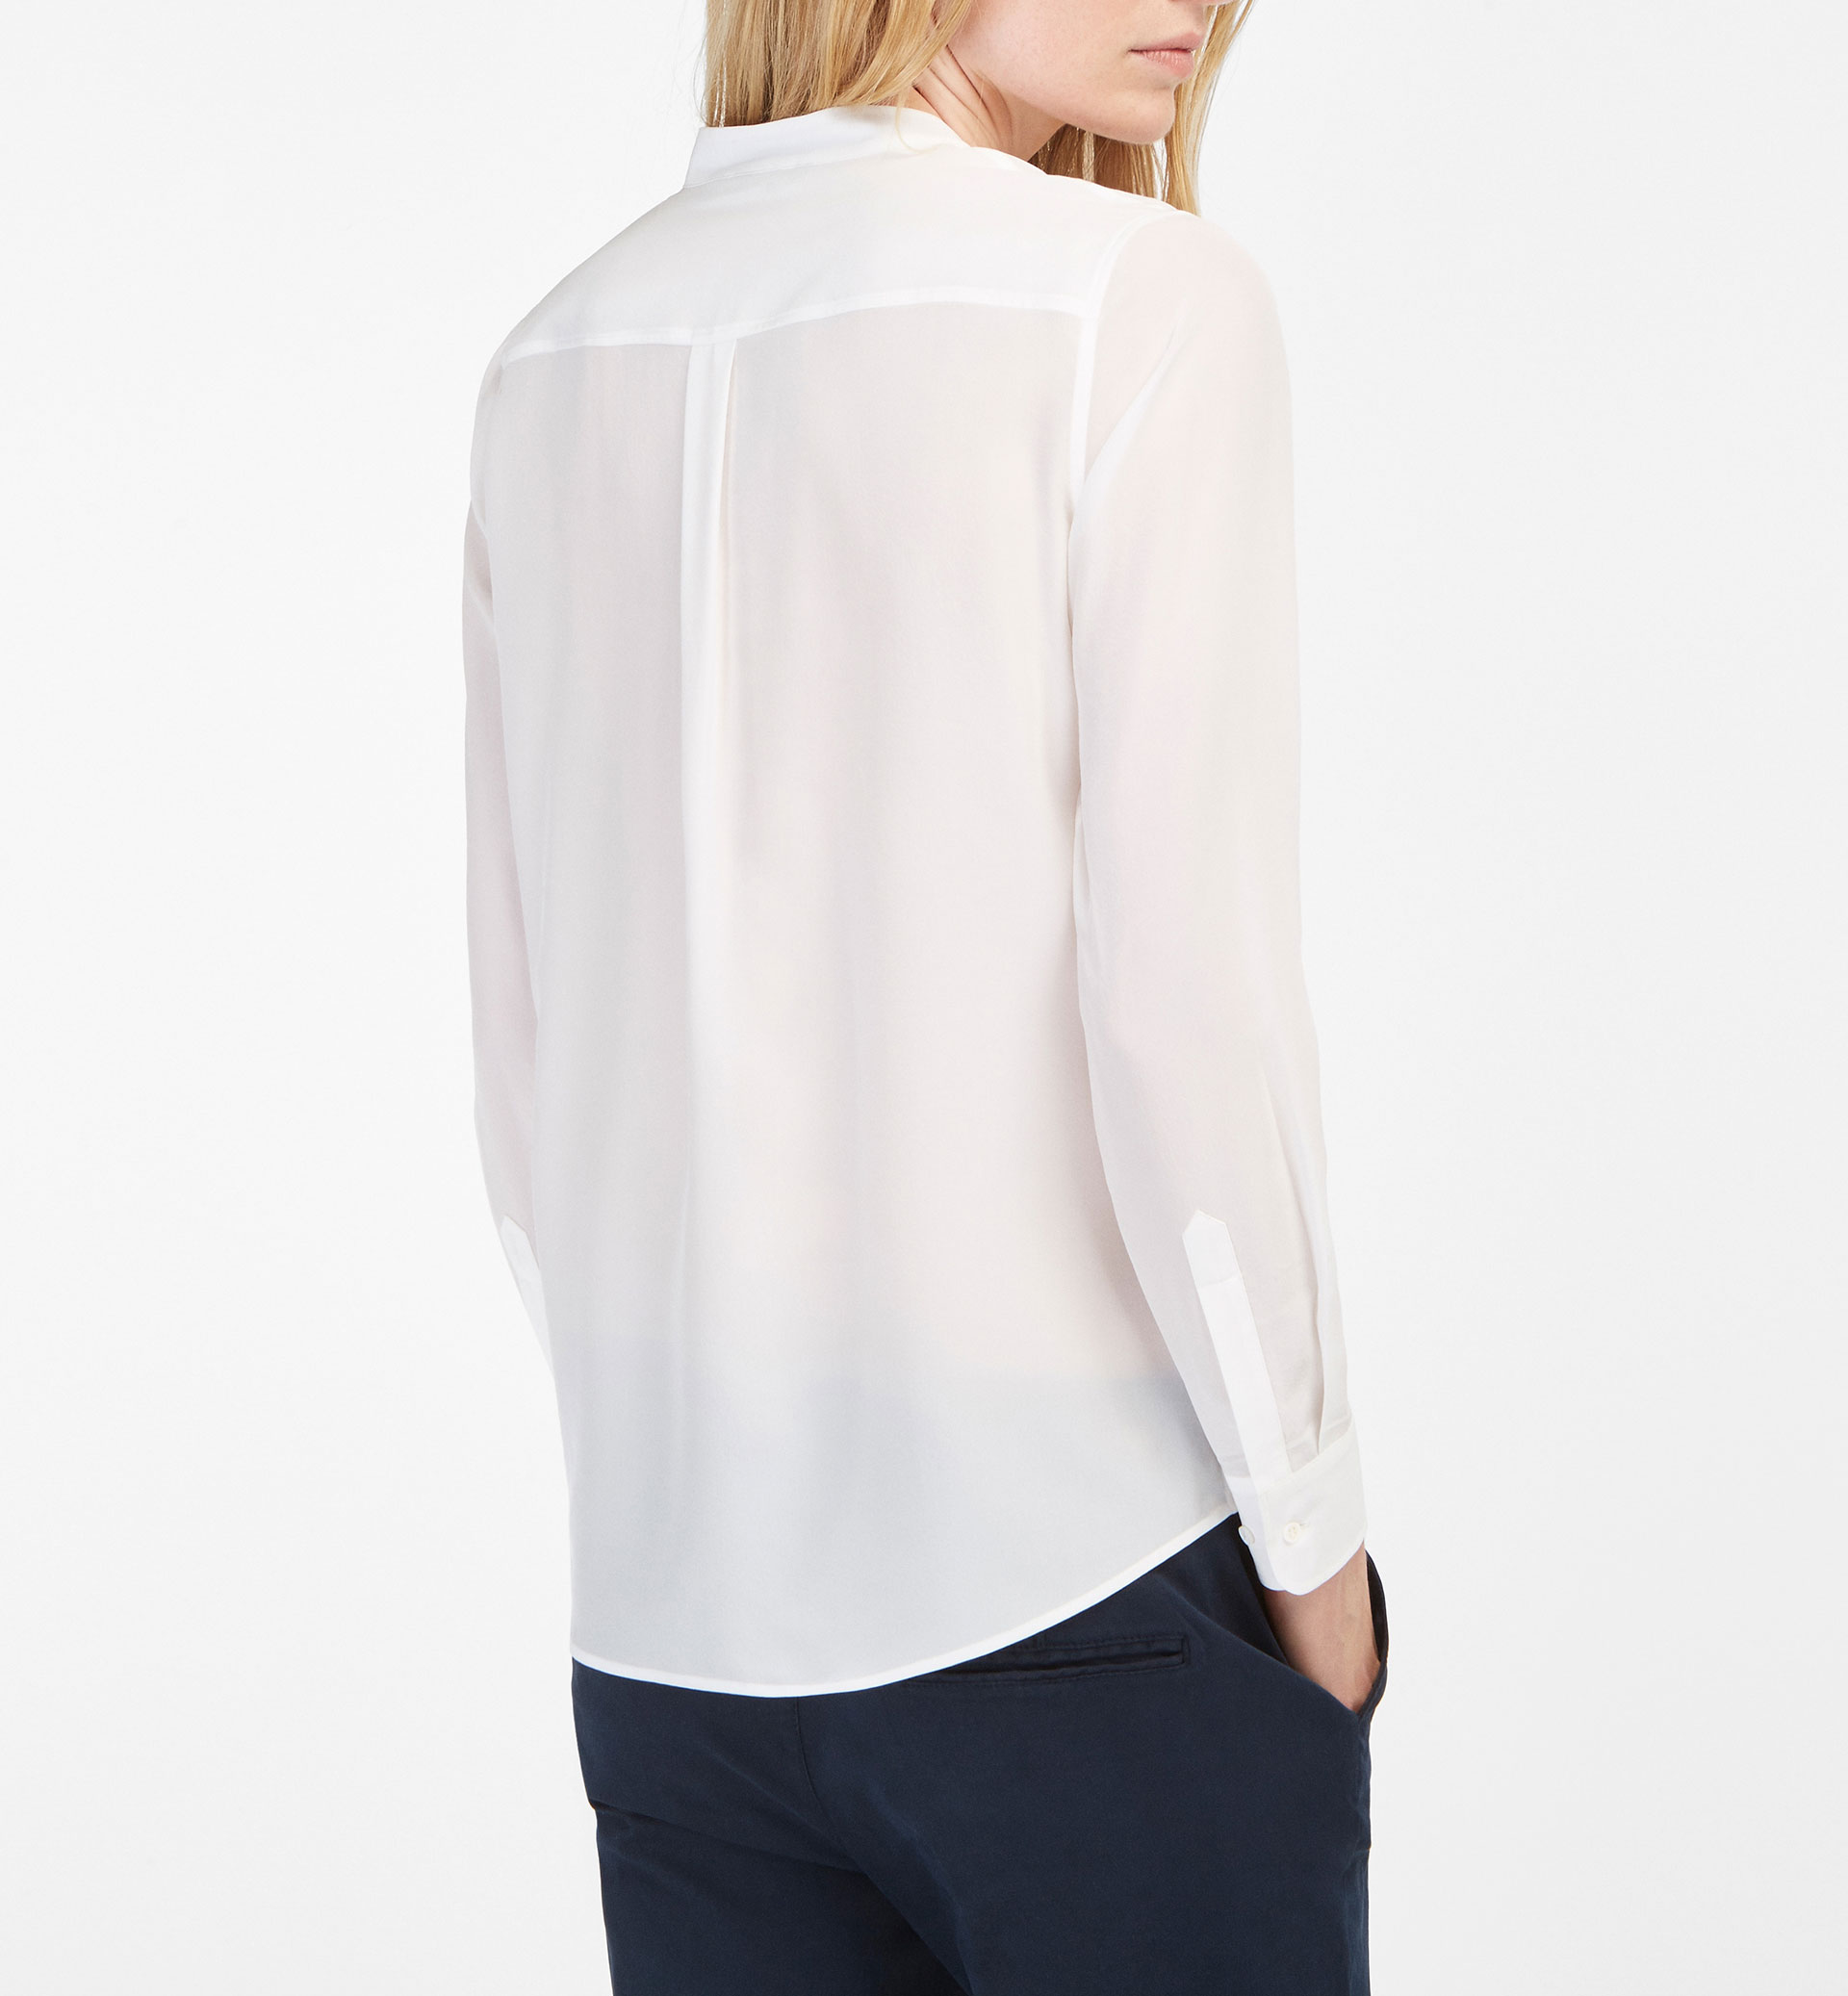 SILK SHIRT WITH POCKETS DETAIL